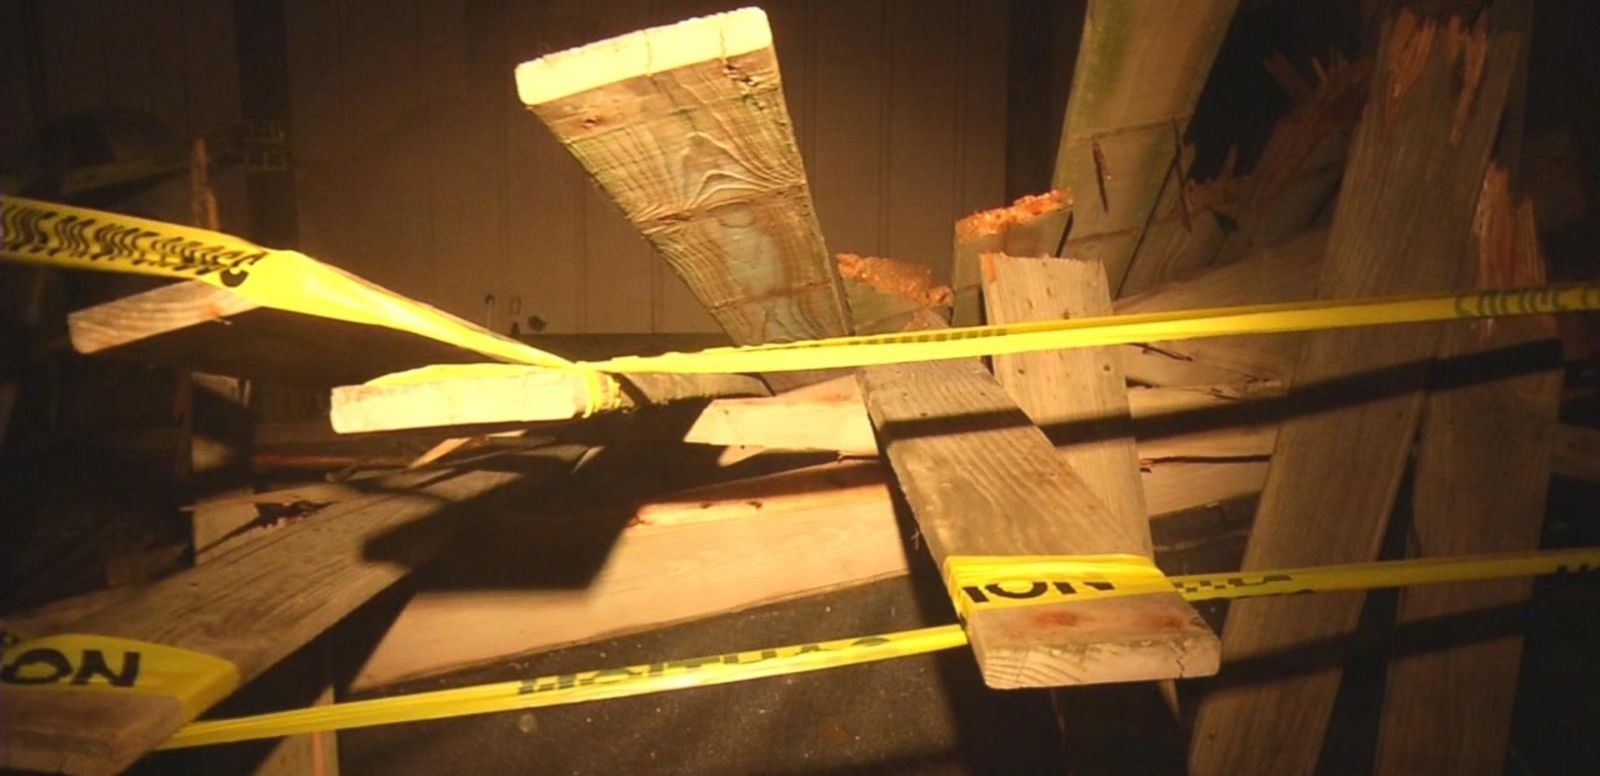 VIDEO: Several People Injured in North Carolina Deck Collapse